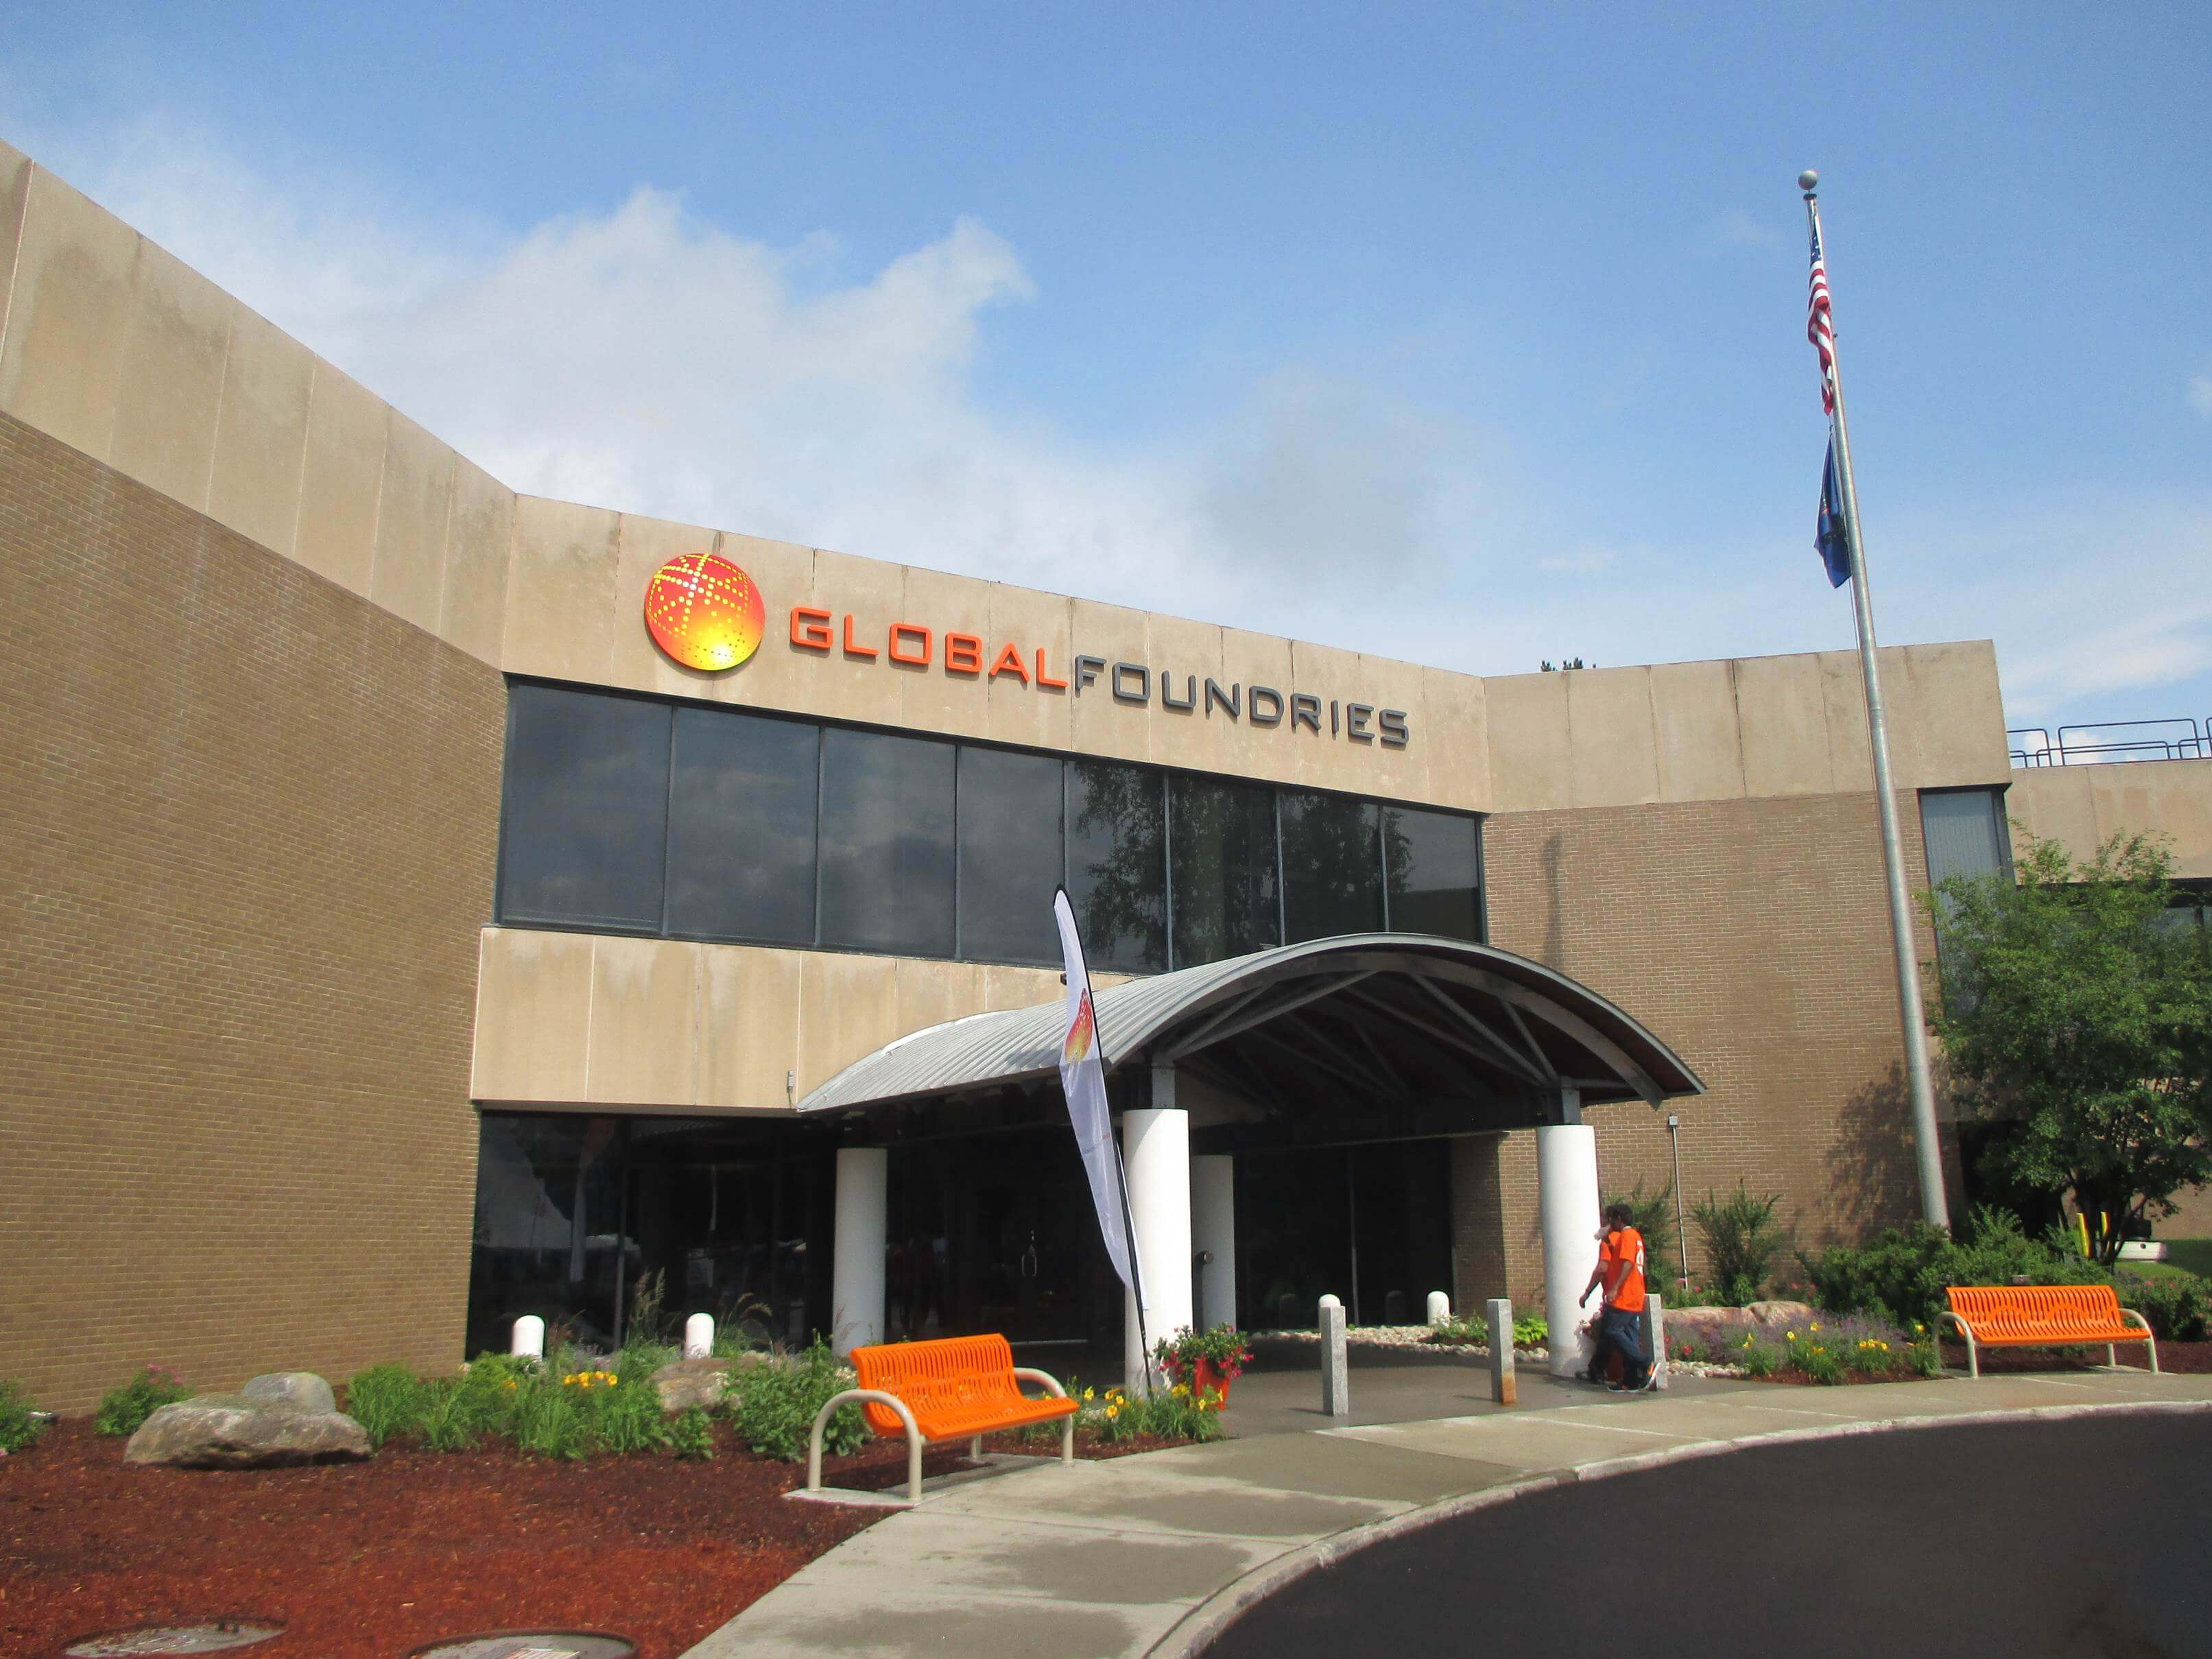 Globalfoundries is reducing its entire workforce by 5